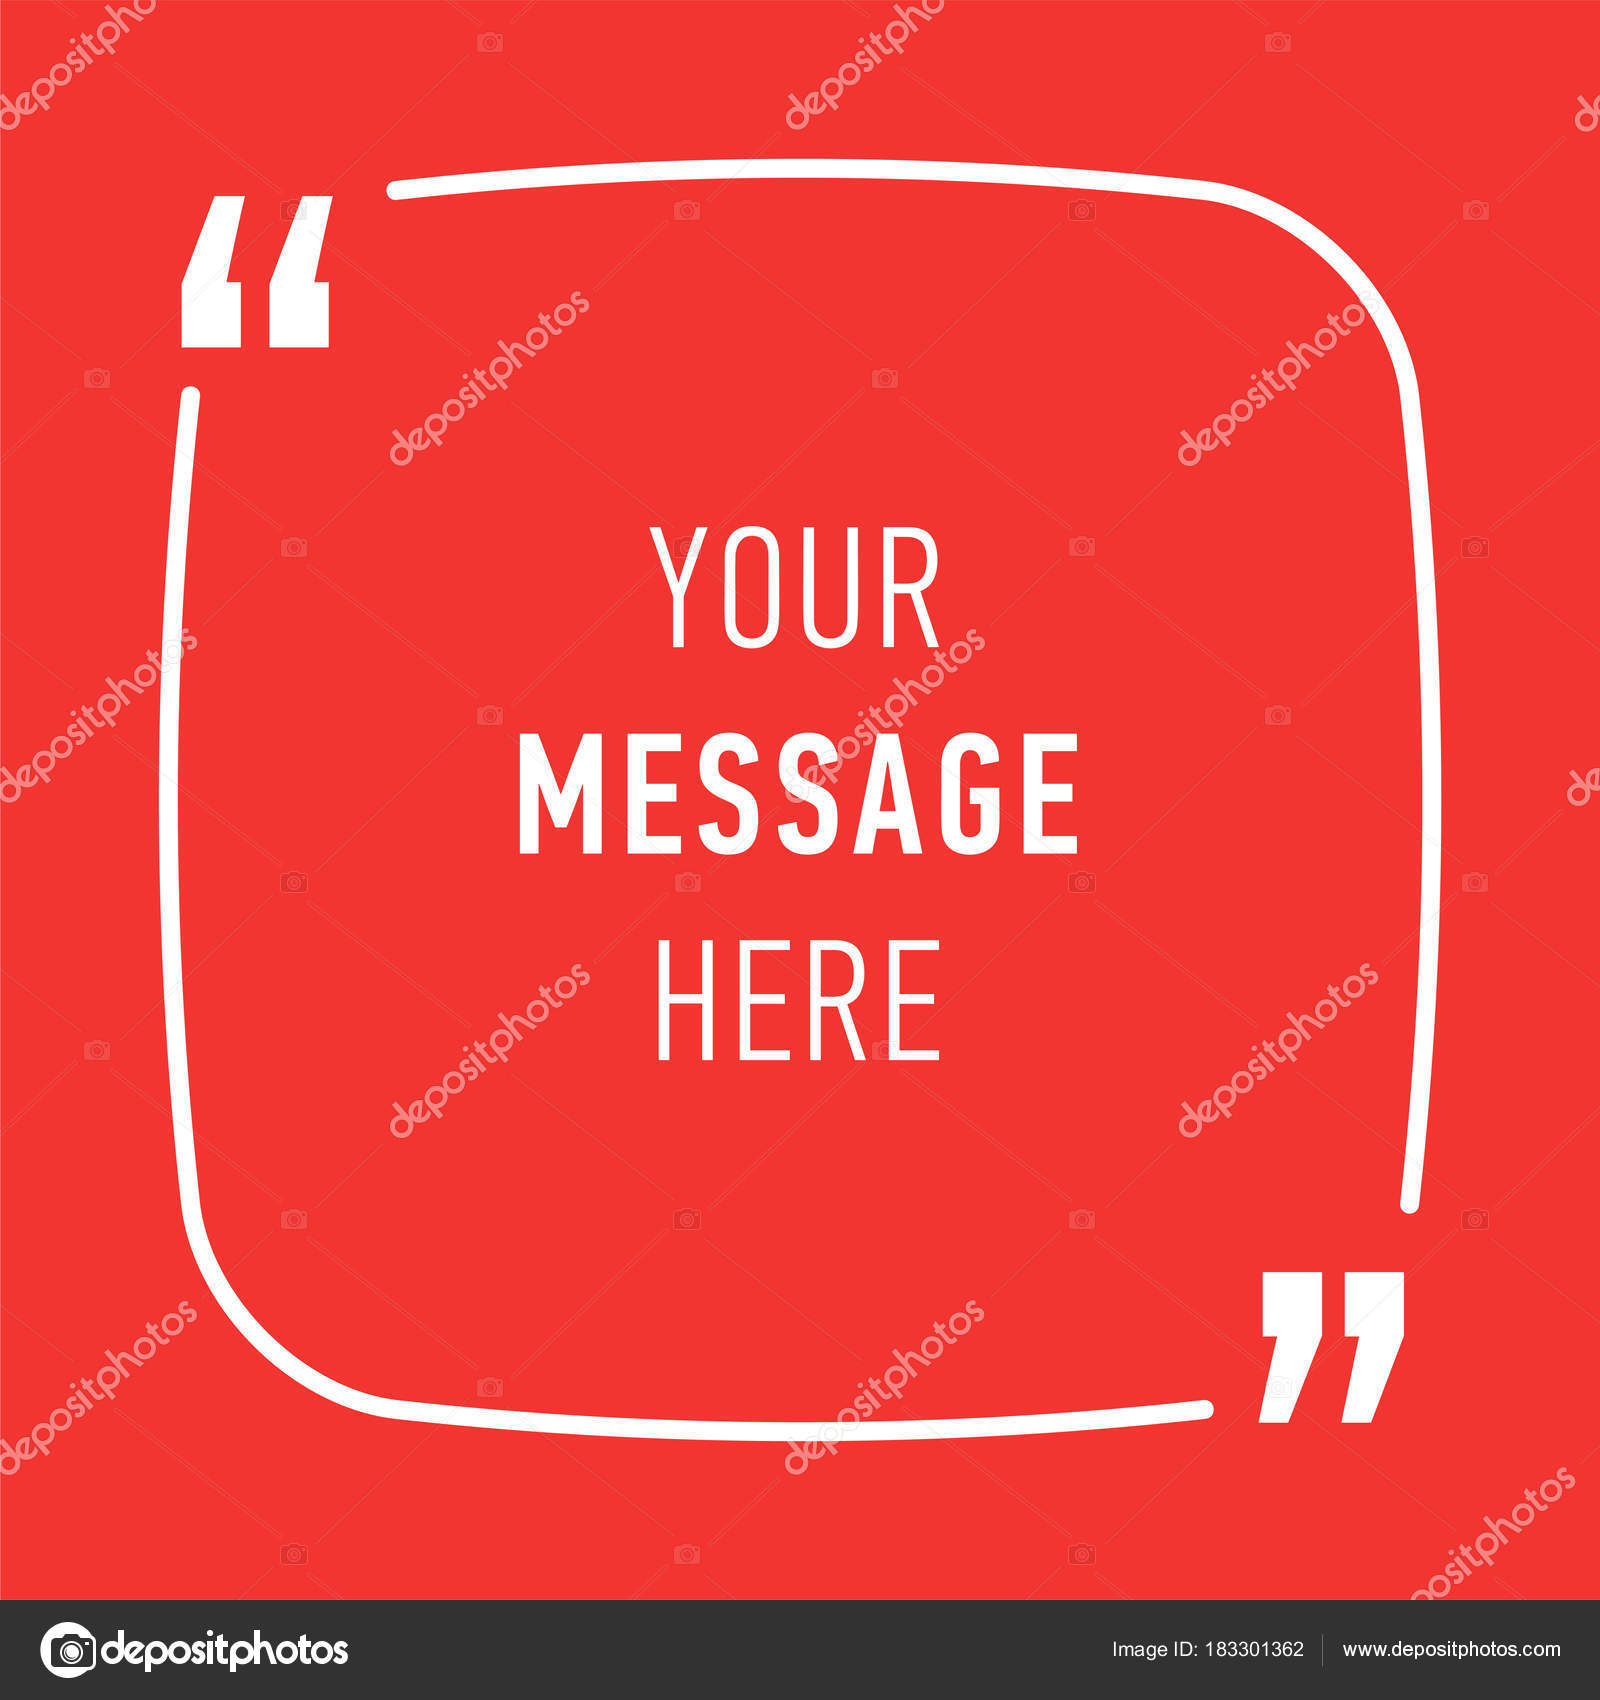 inspirational quote template background for text message in chat